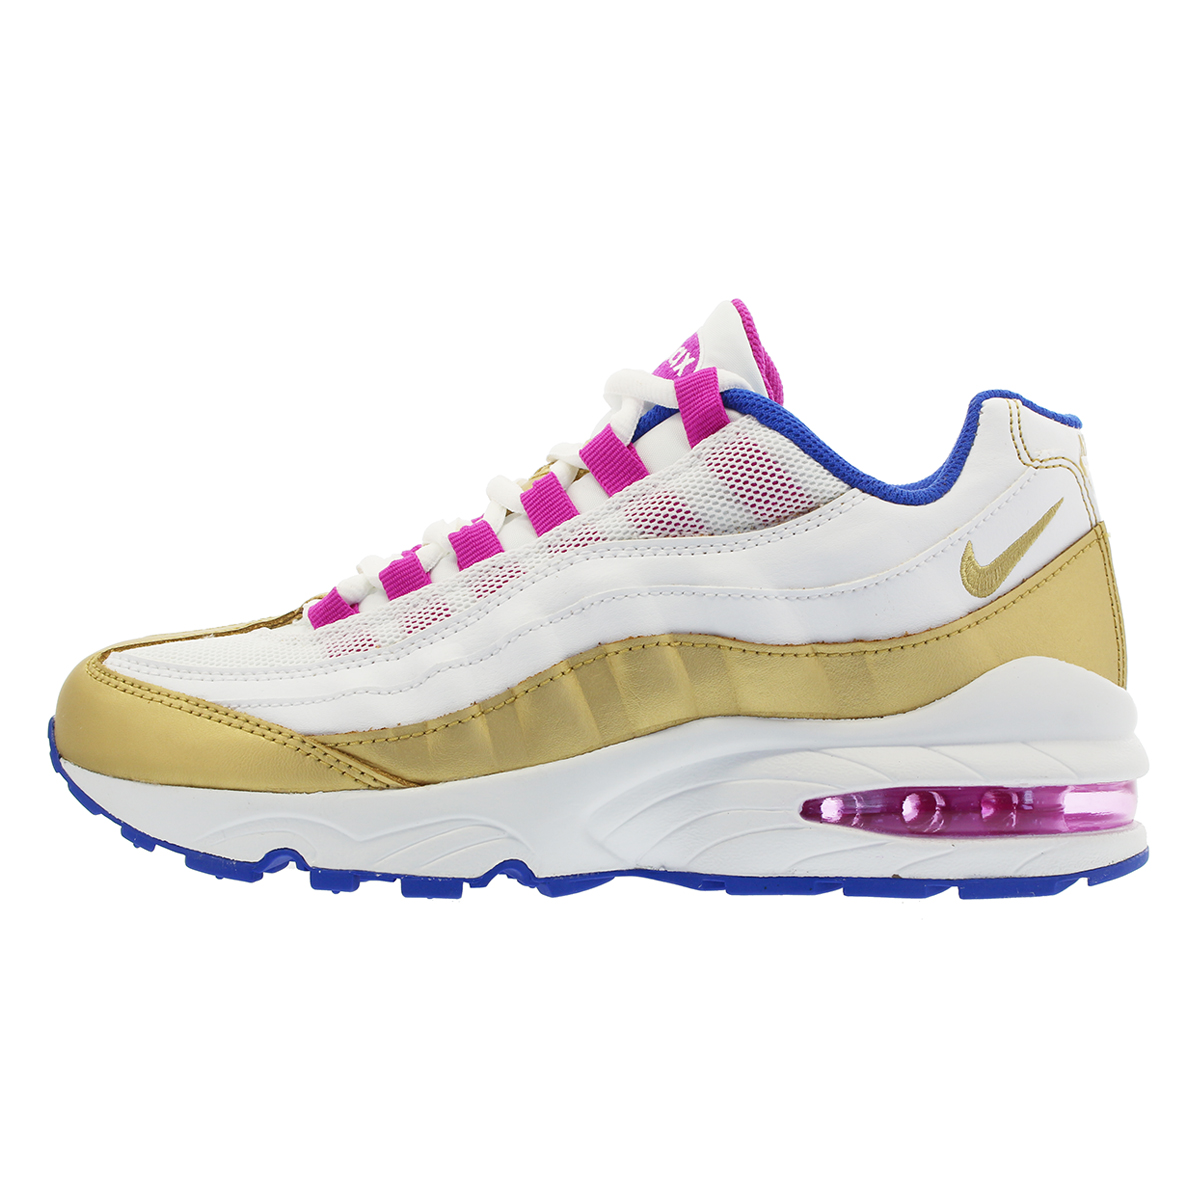 NIKE AIR MAX 95 LE GS Kie Ney AMAX 95 leather GS WHITE RACER BLUE FUCHSIA  BLAST GOLD cce0013b1